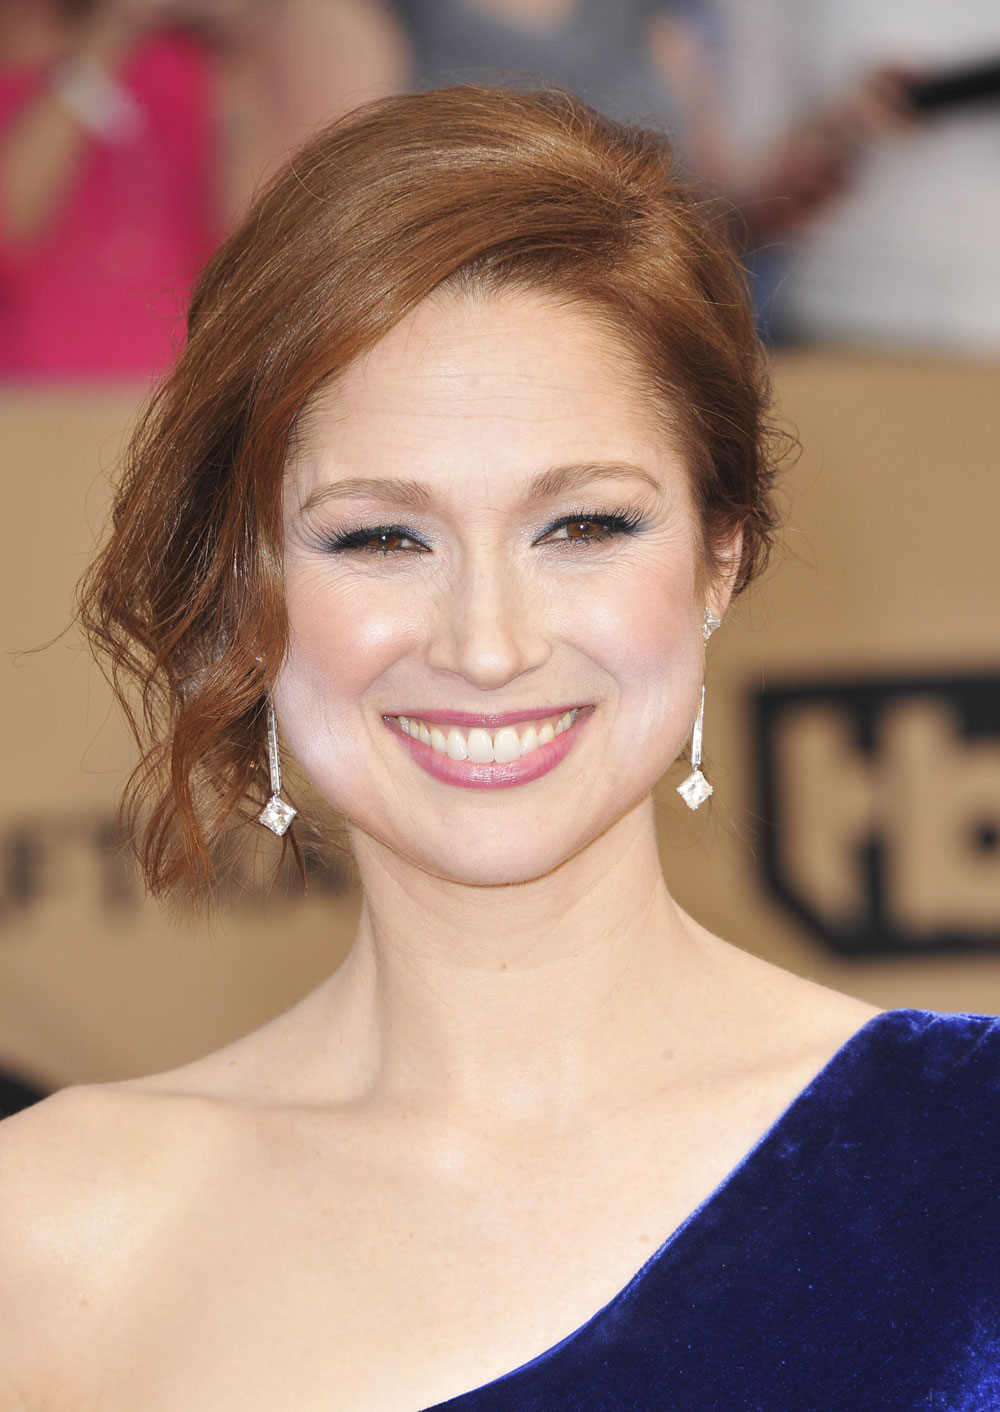 Ellie Kemper nudes (45 pictures), photos Tits, Snapchat, in bikini 2020